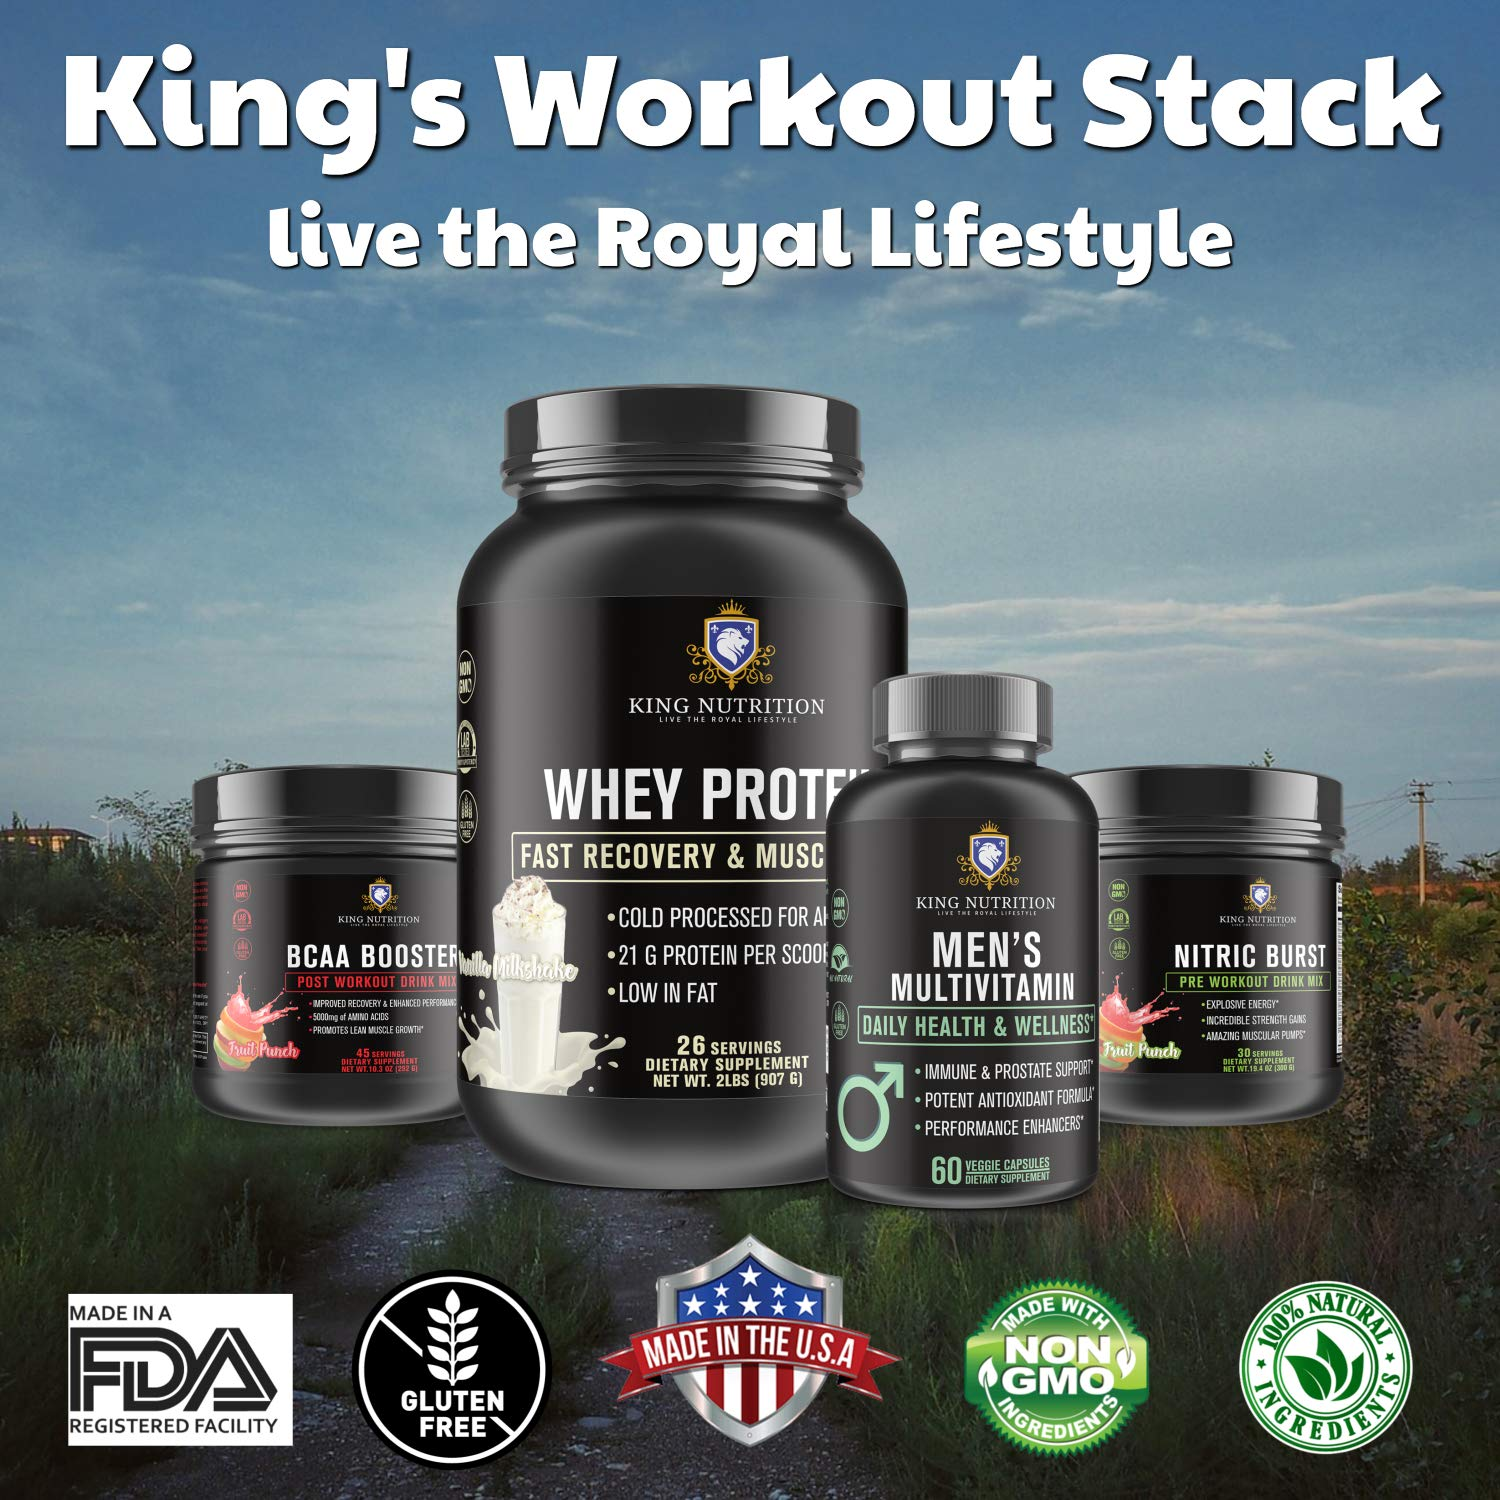 King Nutrition Workout Stack